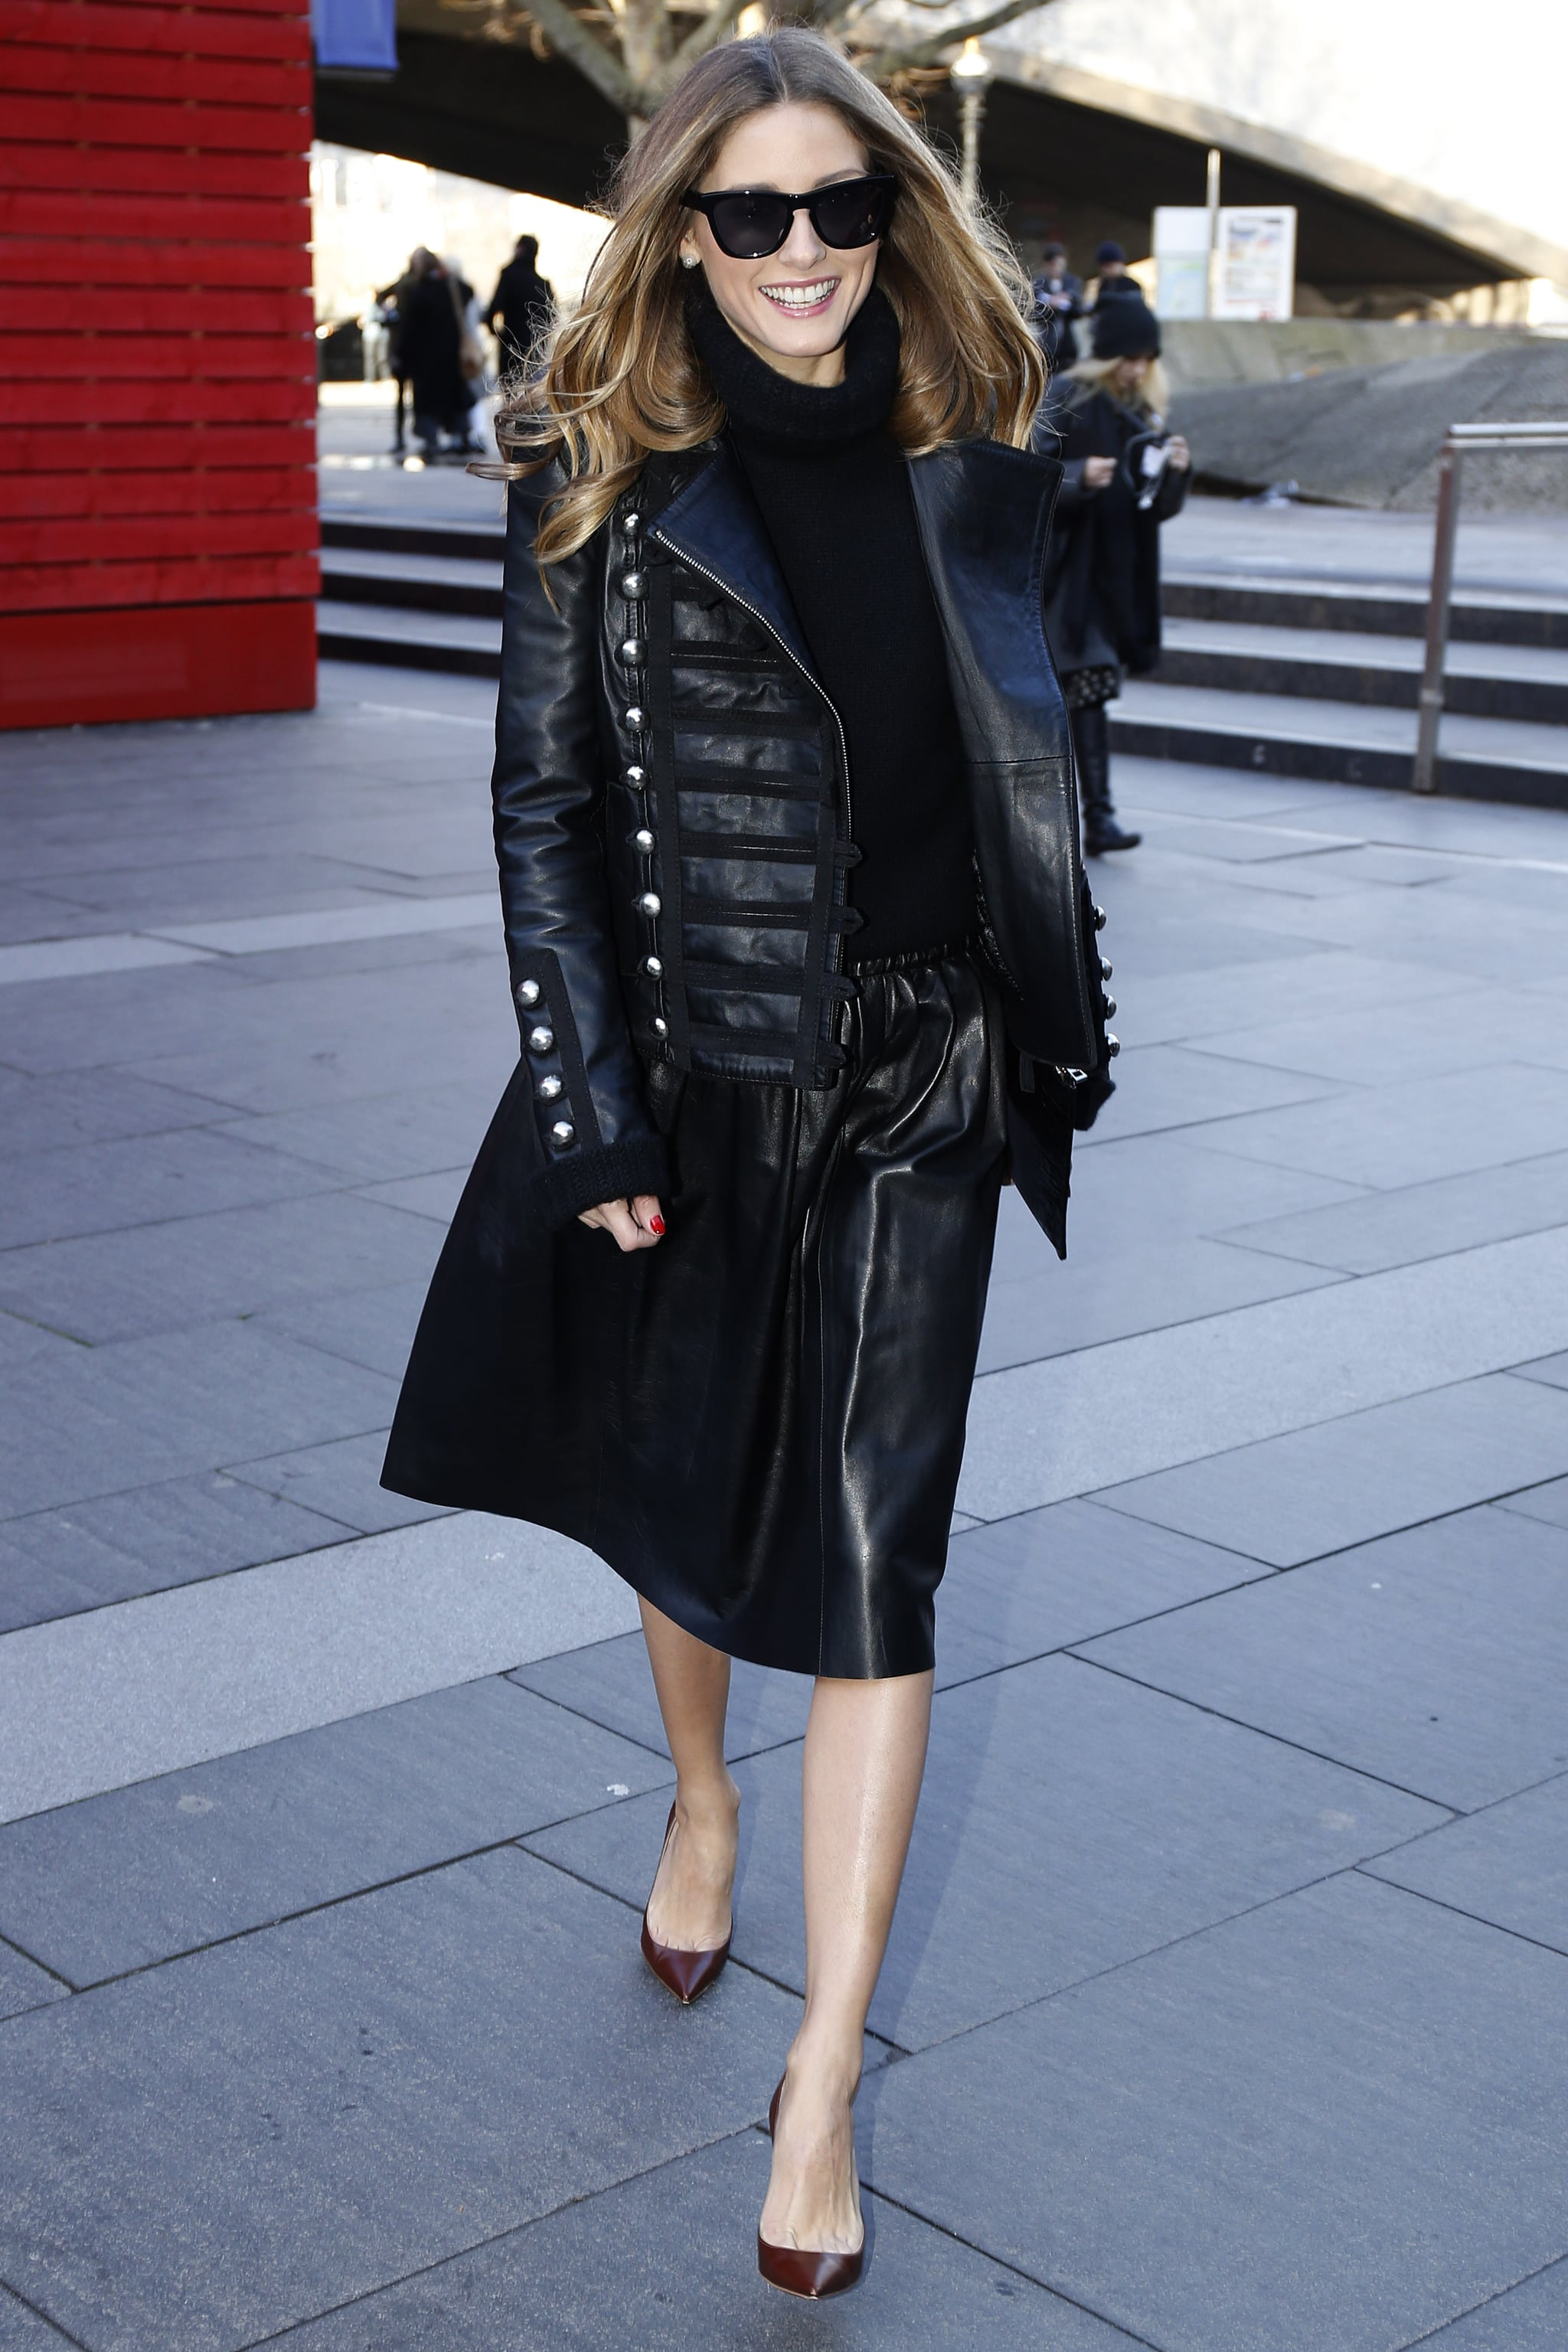 Olivia made a styled run between shows in a Reiss skirt, topped with a Boda leather jacket and Westward Leaning shades. She finished it all off with Christian Louboutins and a Whistles clutch in hand.